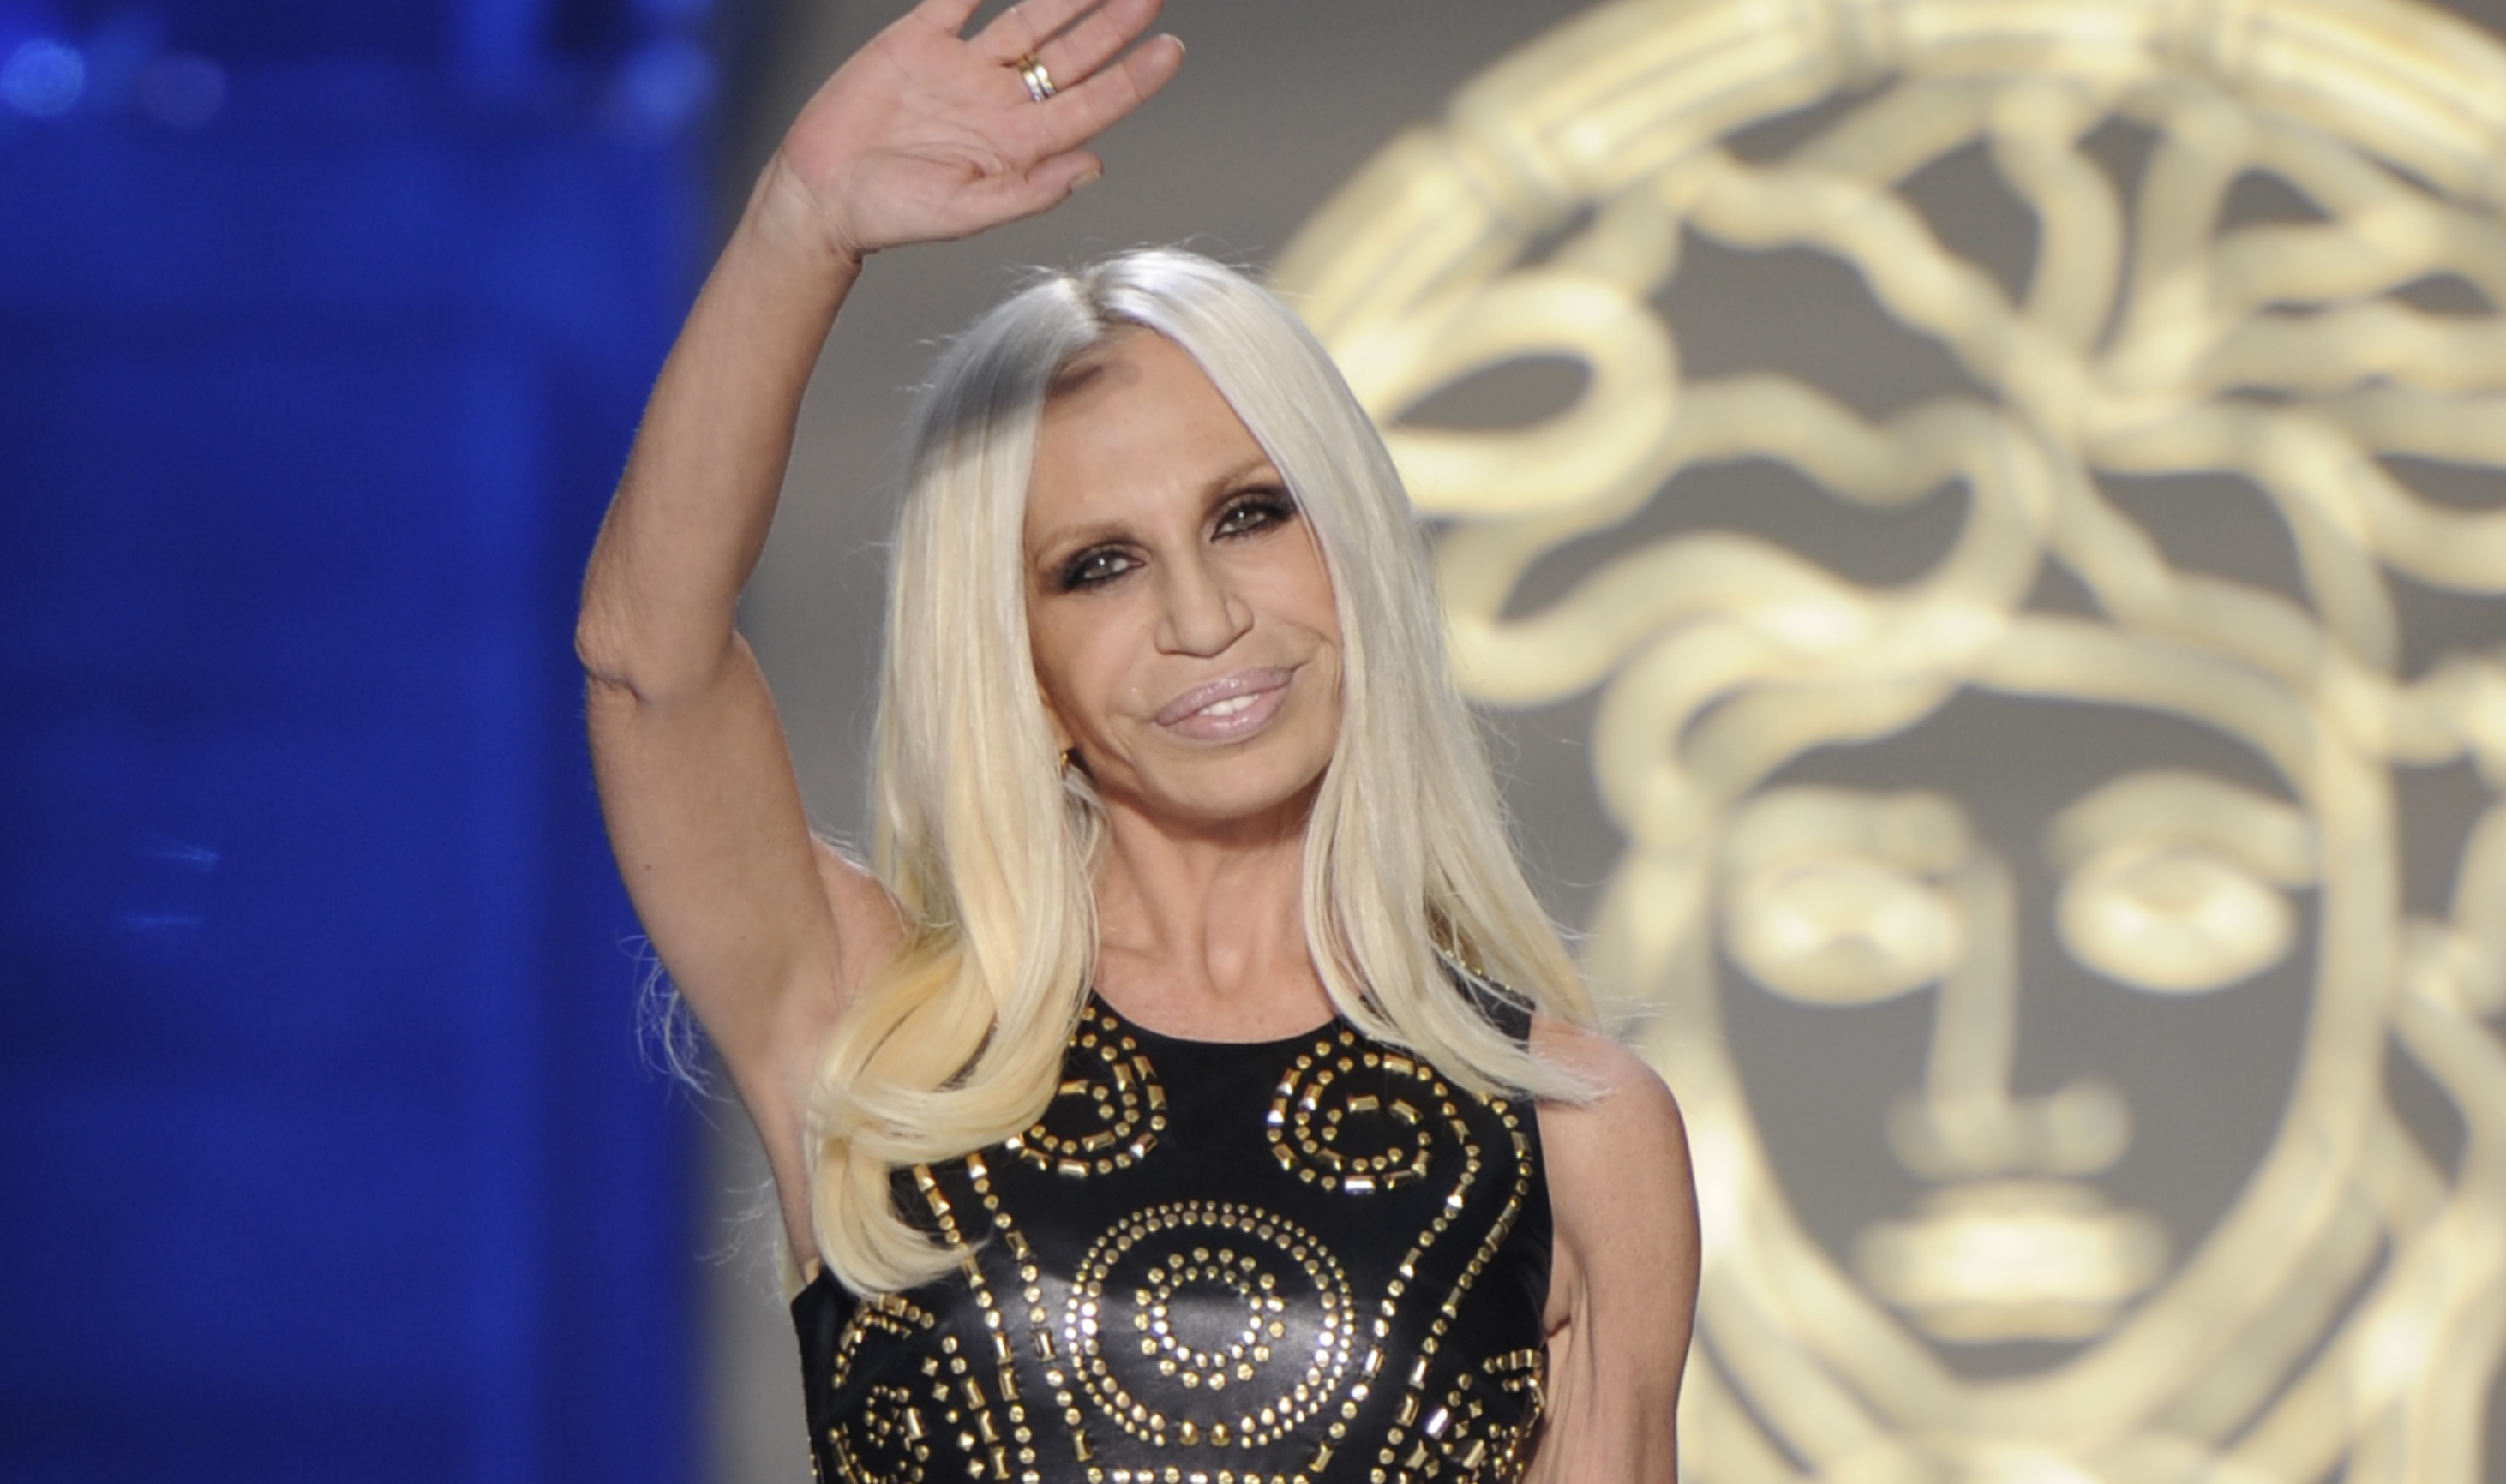 10 Reasons Why We Love Donatella Versace